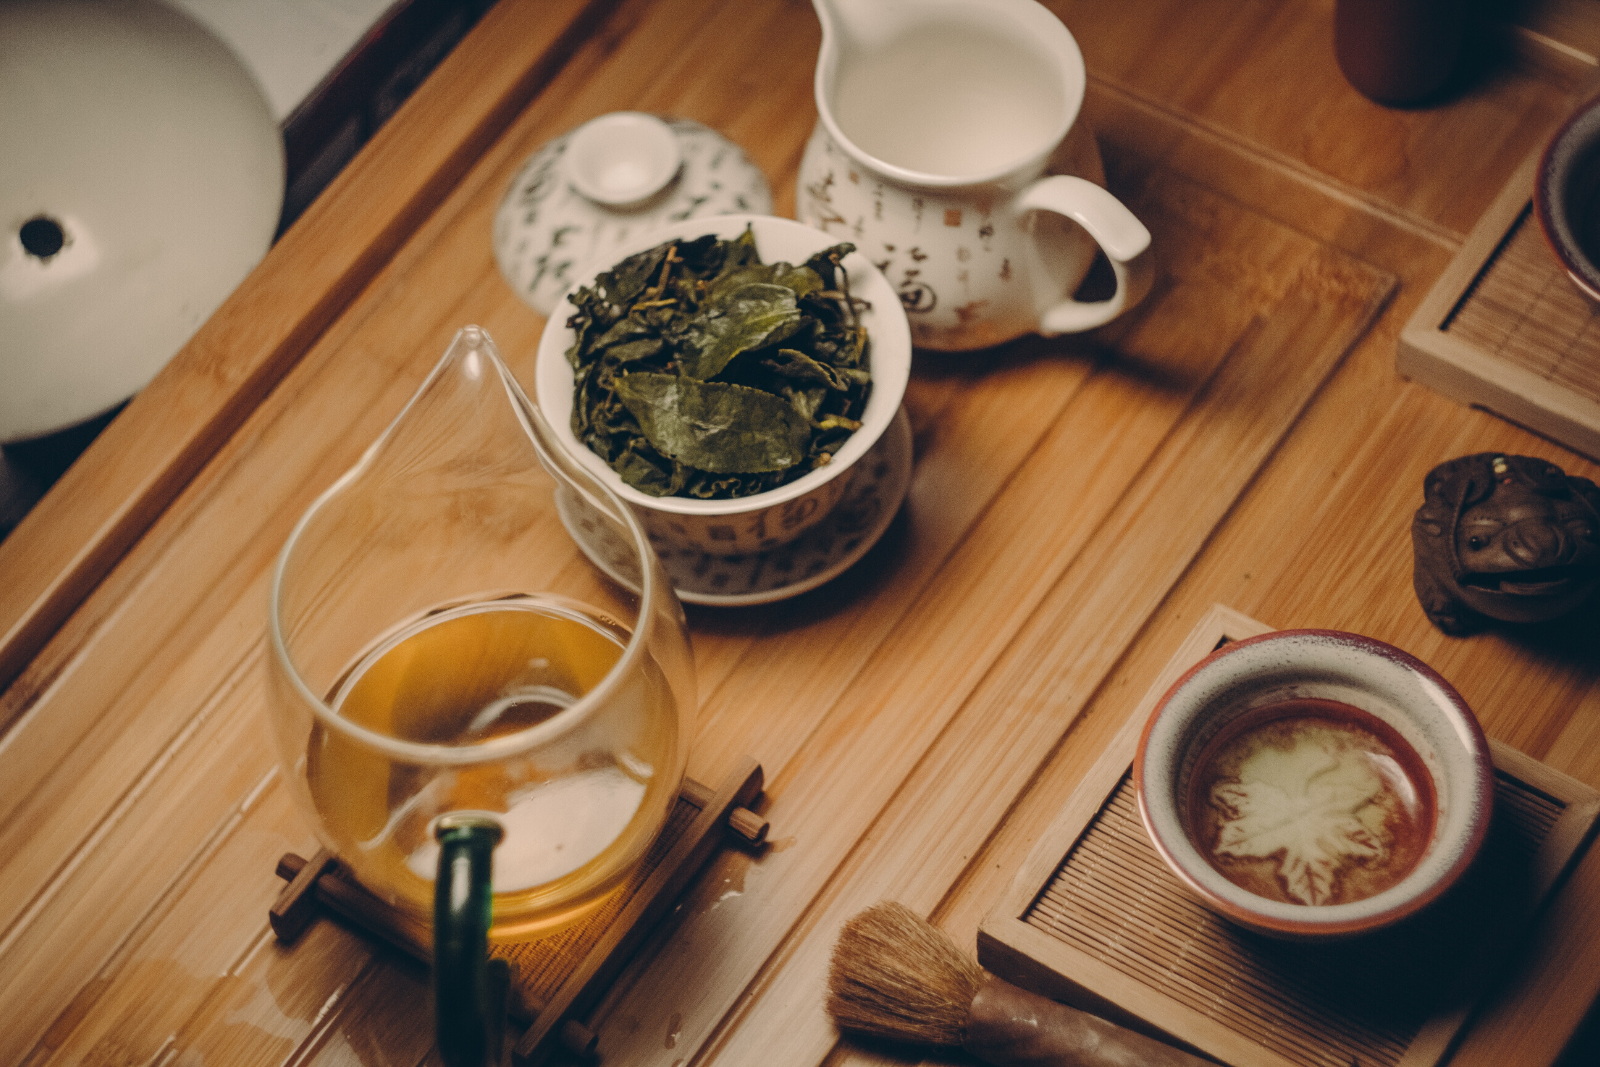 Tea Cups and Tea Leaves | Tea Brewing Mistakes: 9 Ways You're Ruining Your Cup Of Tea